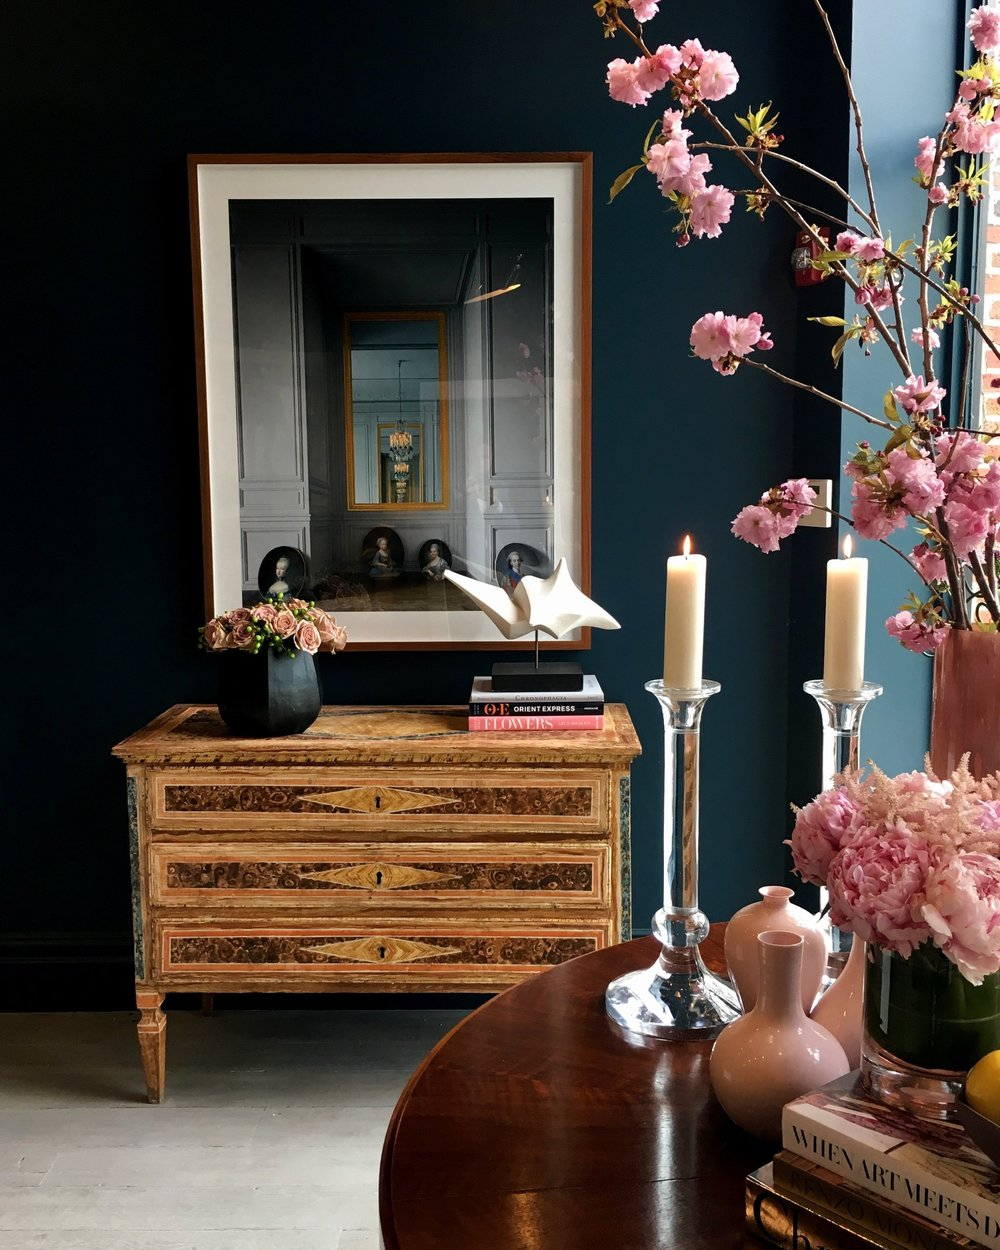 Antiques, art, and accessories share space in the showroom.